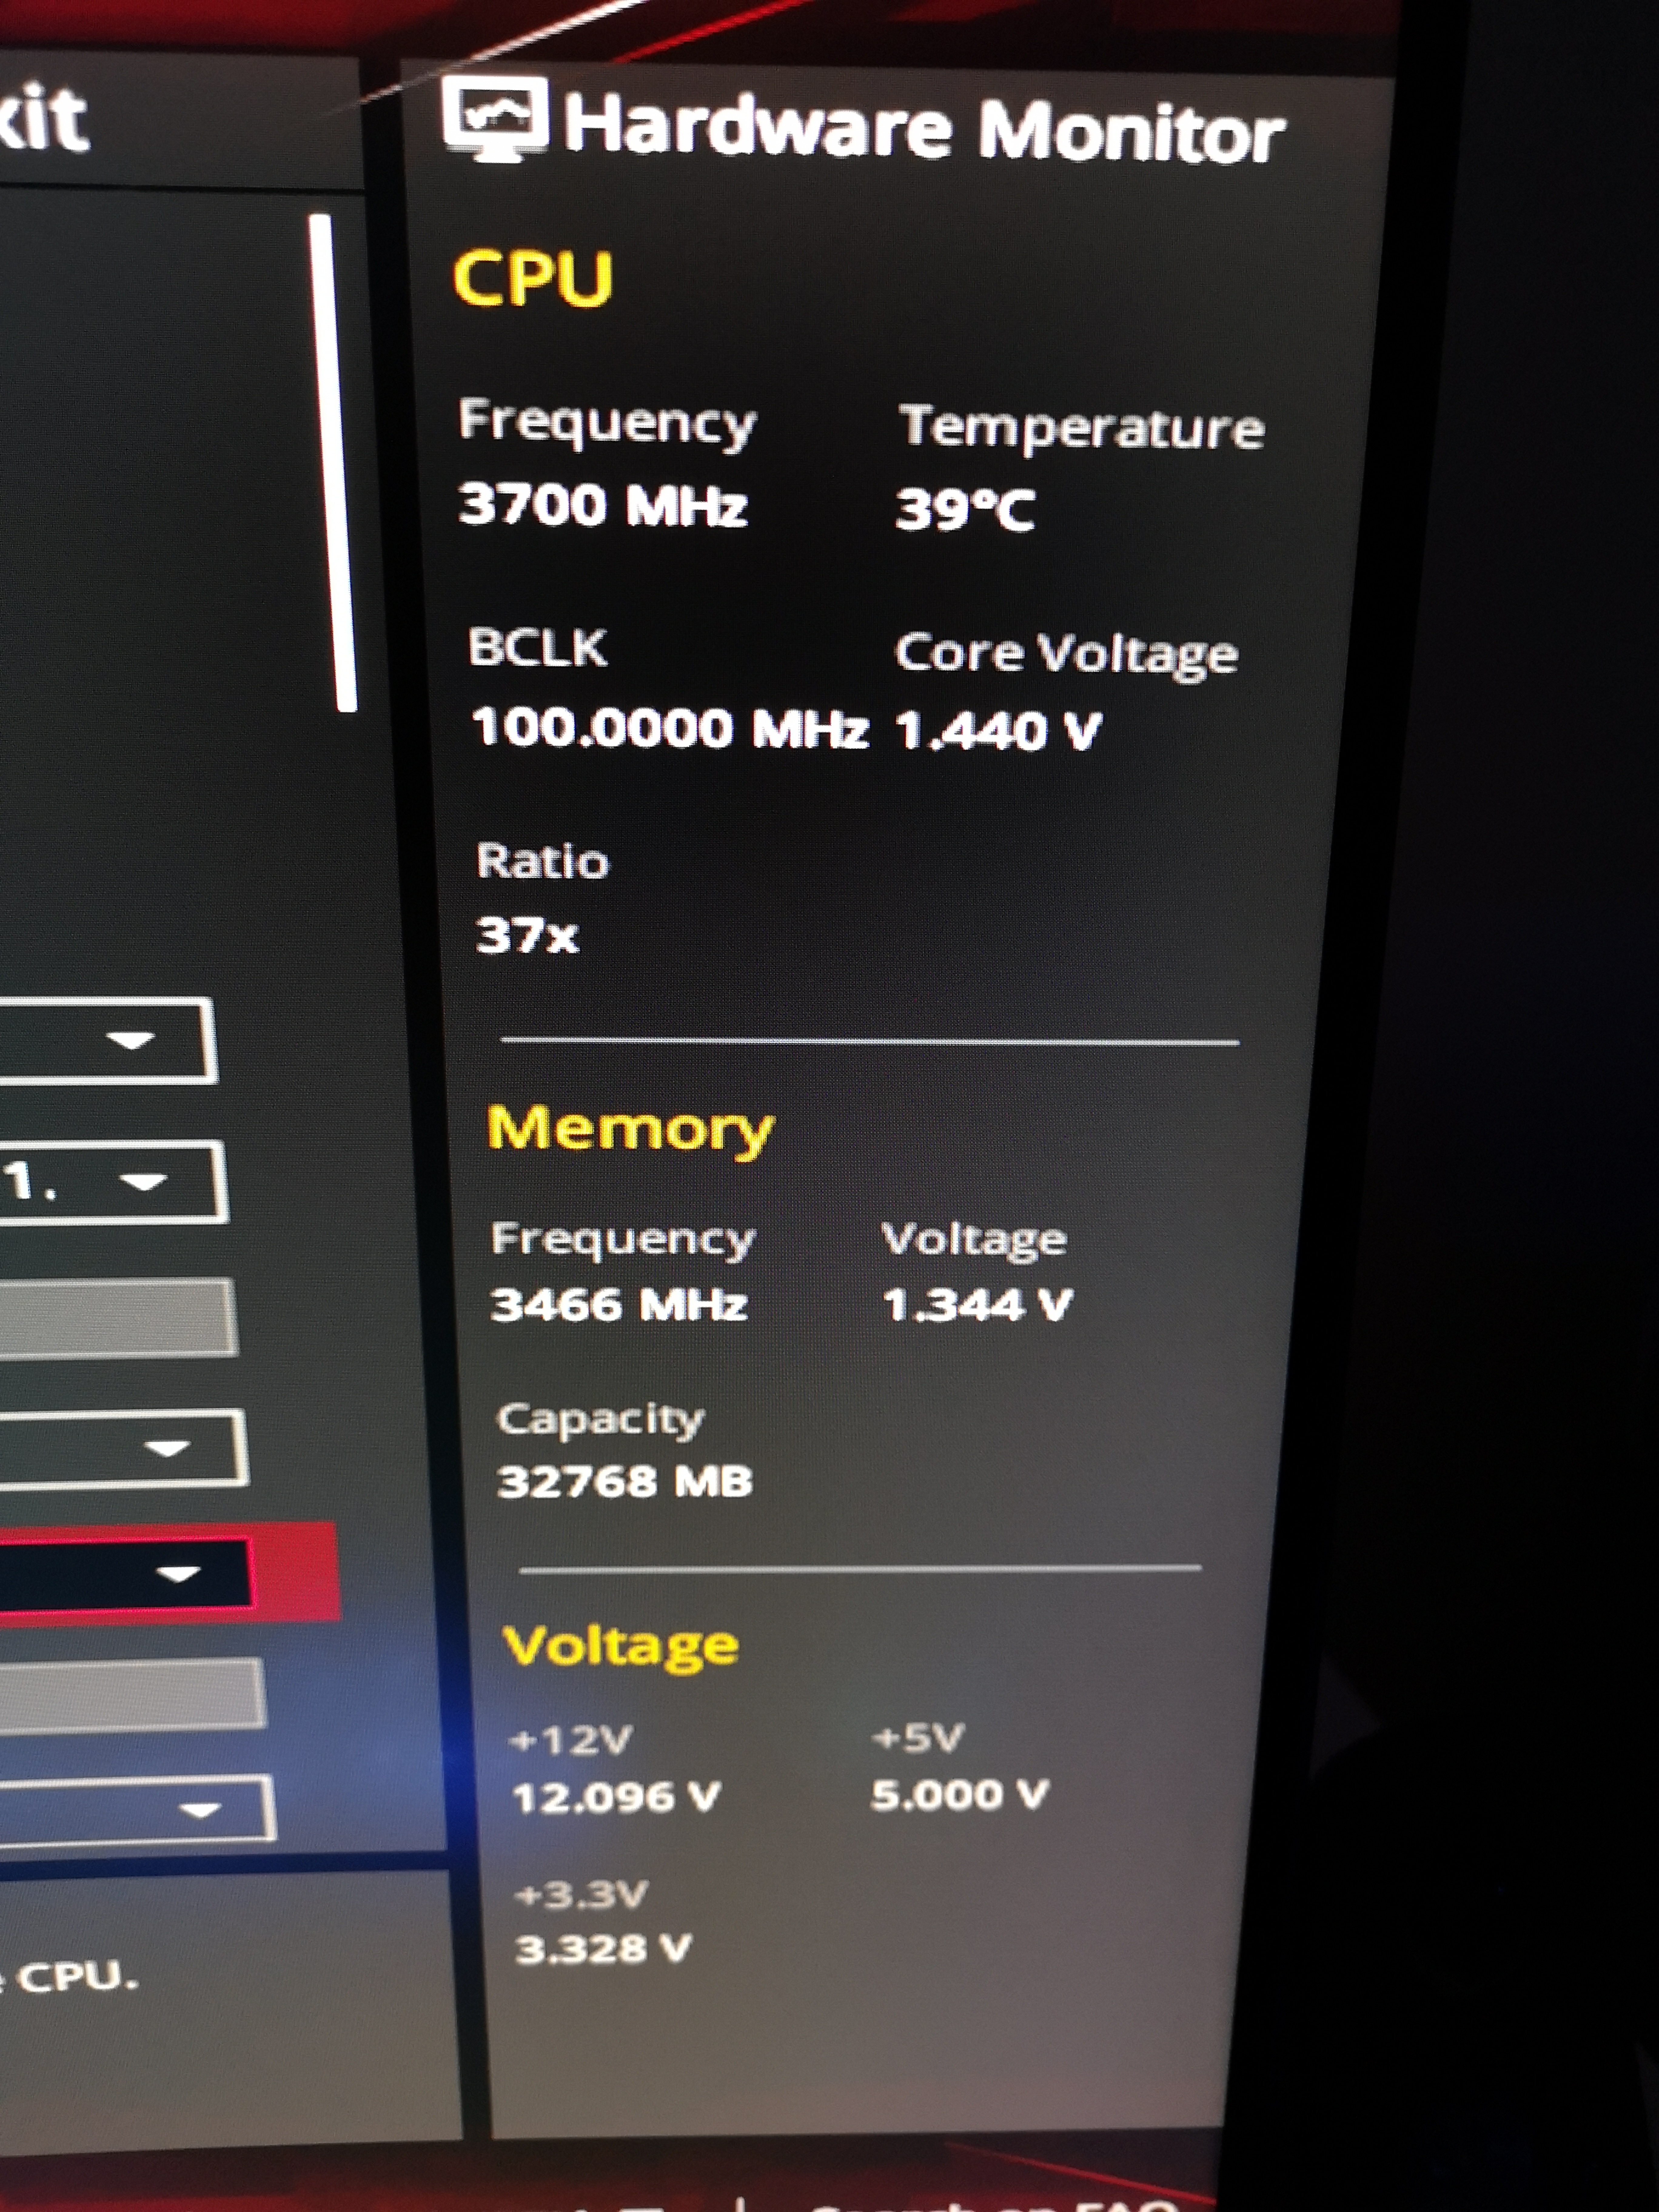 I7 8700k cpu core voltage too high? - CPUs, Motherboards, and Memory